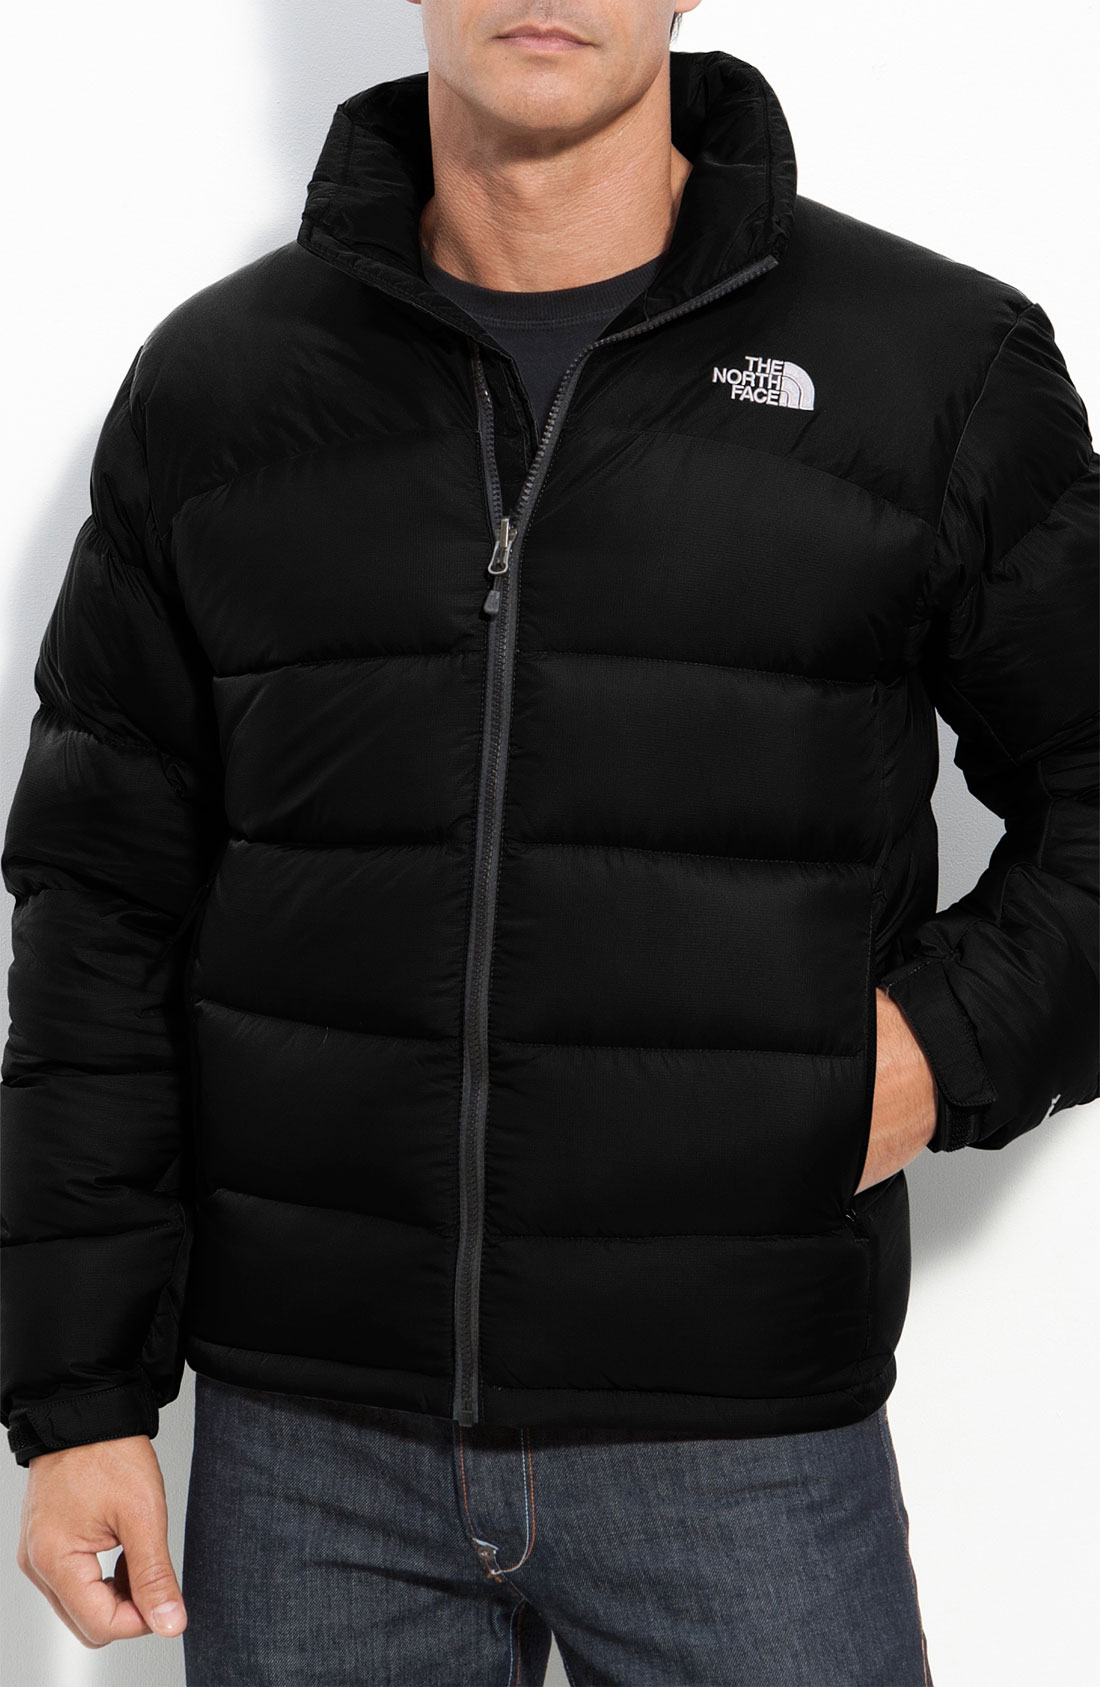 the north face nuptse 2 down jacket in black for men lyst. Black Bedroom Furniture Sets. Home Design Ideas